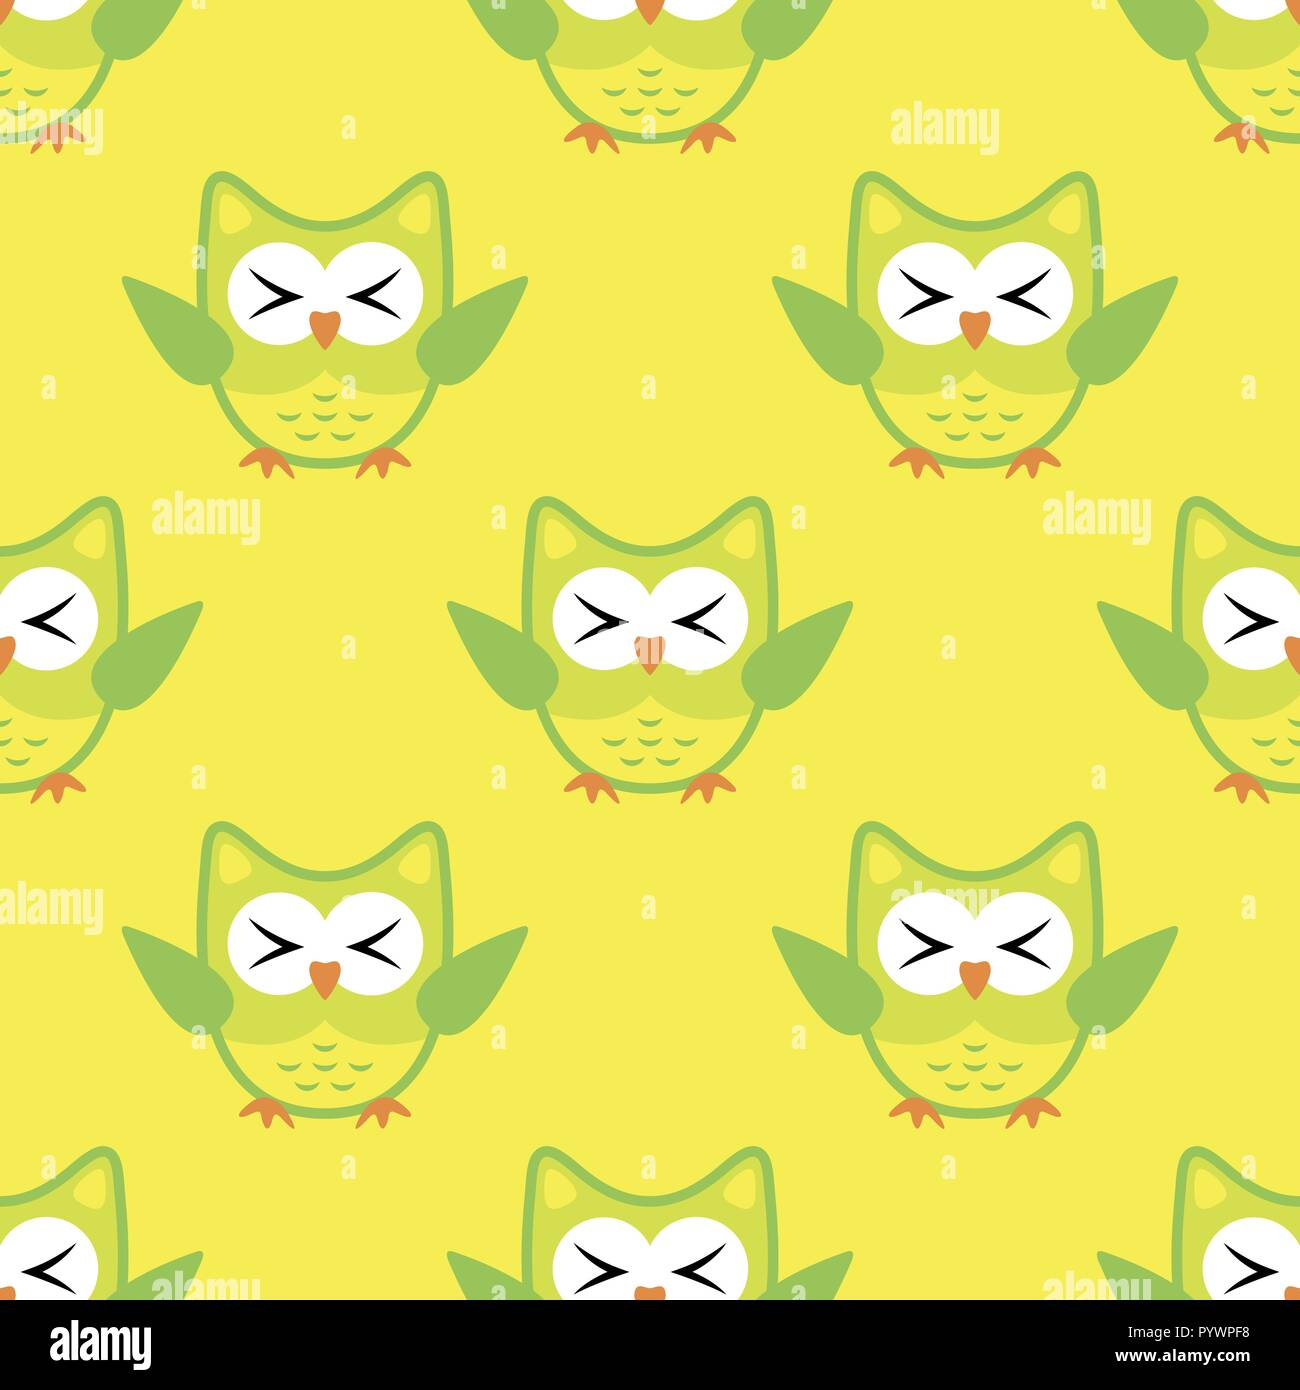 Owl stylized art seemless pattern yellow green colors - Stock Vector